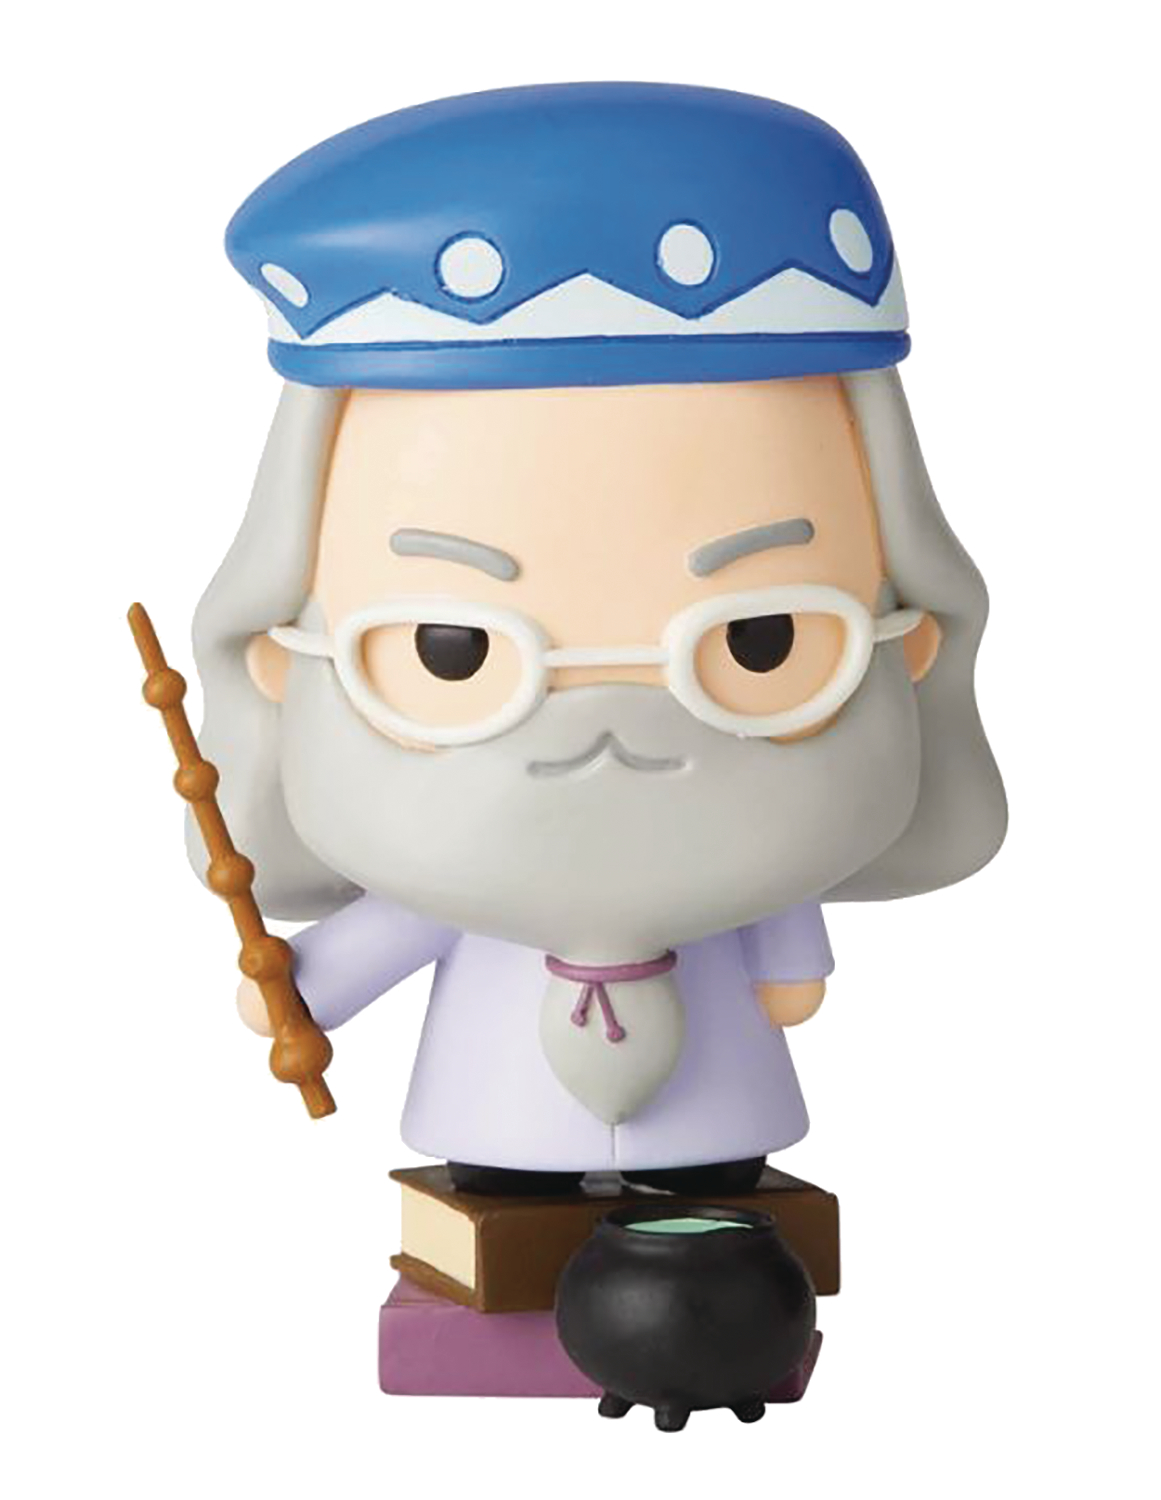 HARRY POTTER DUMBLEDORE CHARMS 3IN STYLE FIGURE